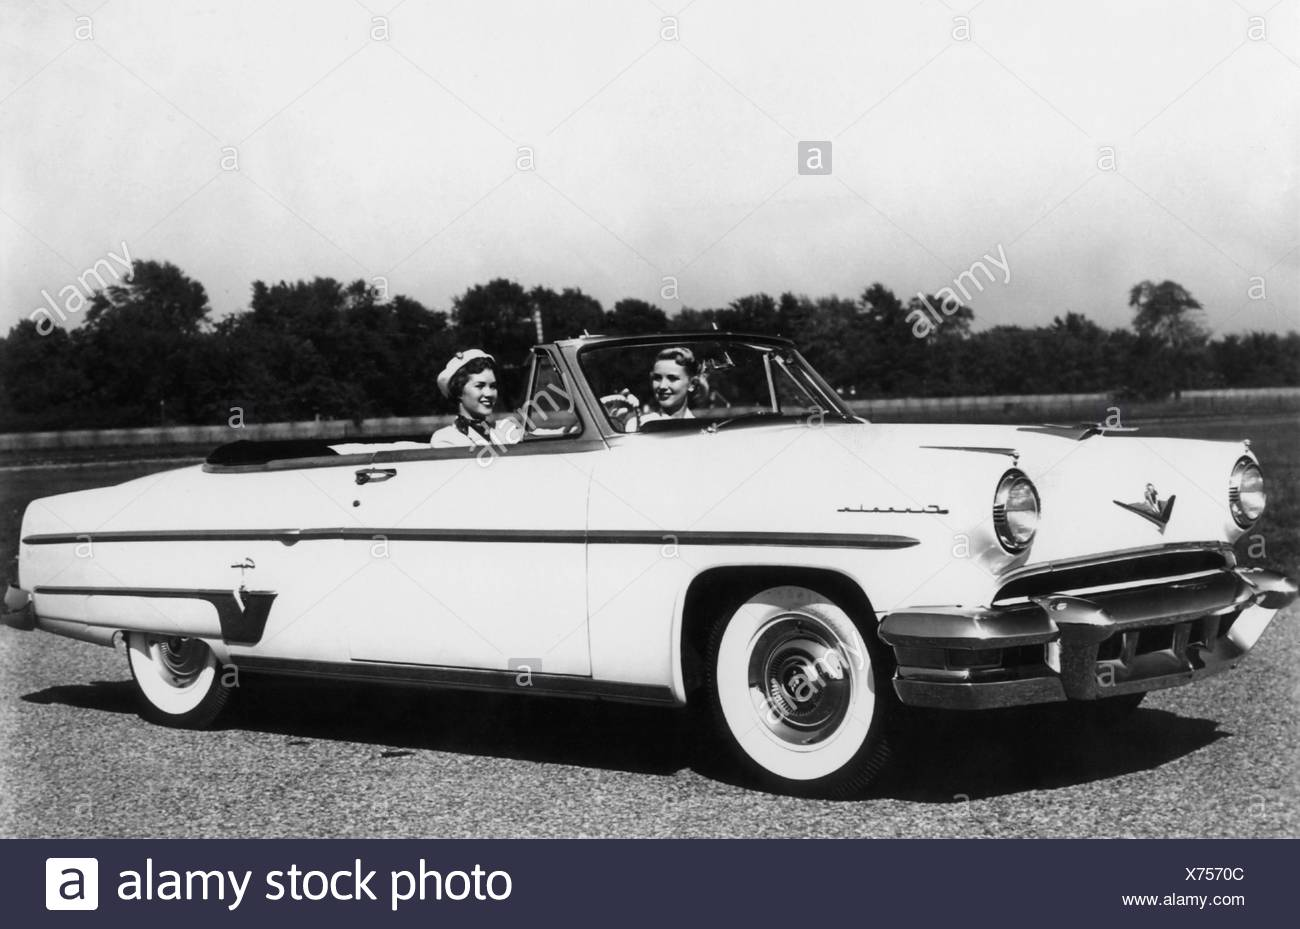 transport / transportation, car, vehicle variants, Lincoln Capri Special Custom Convertible, 1954, Additional-Rights-Clearences-NA - Stock Image